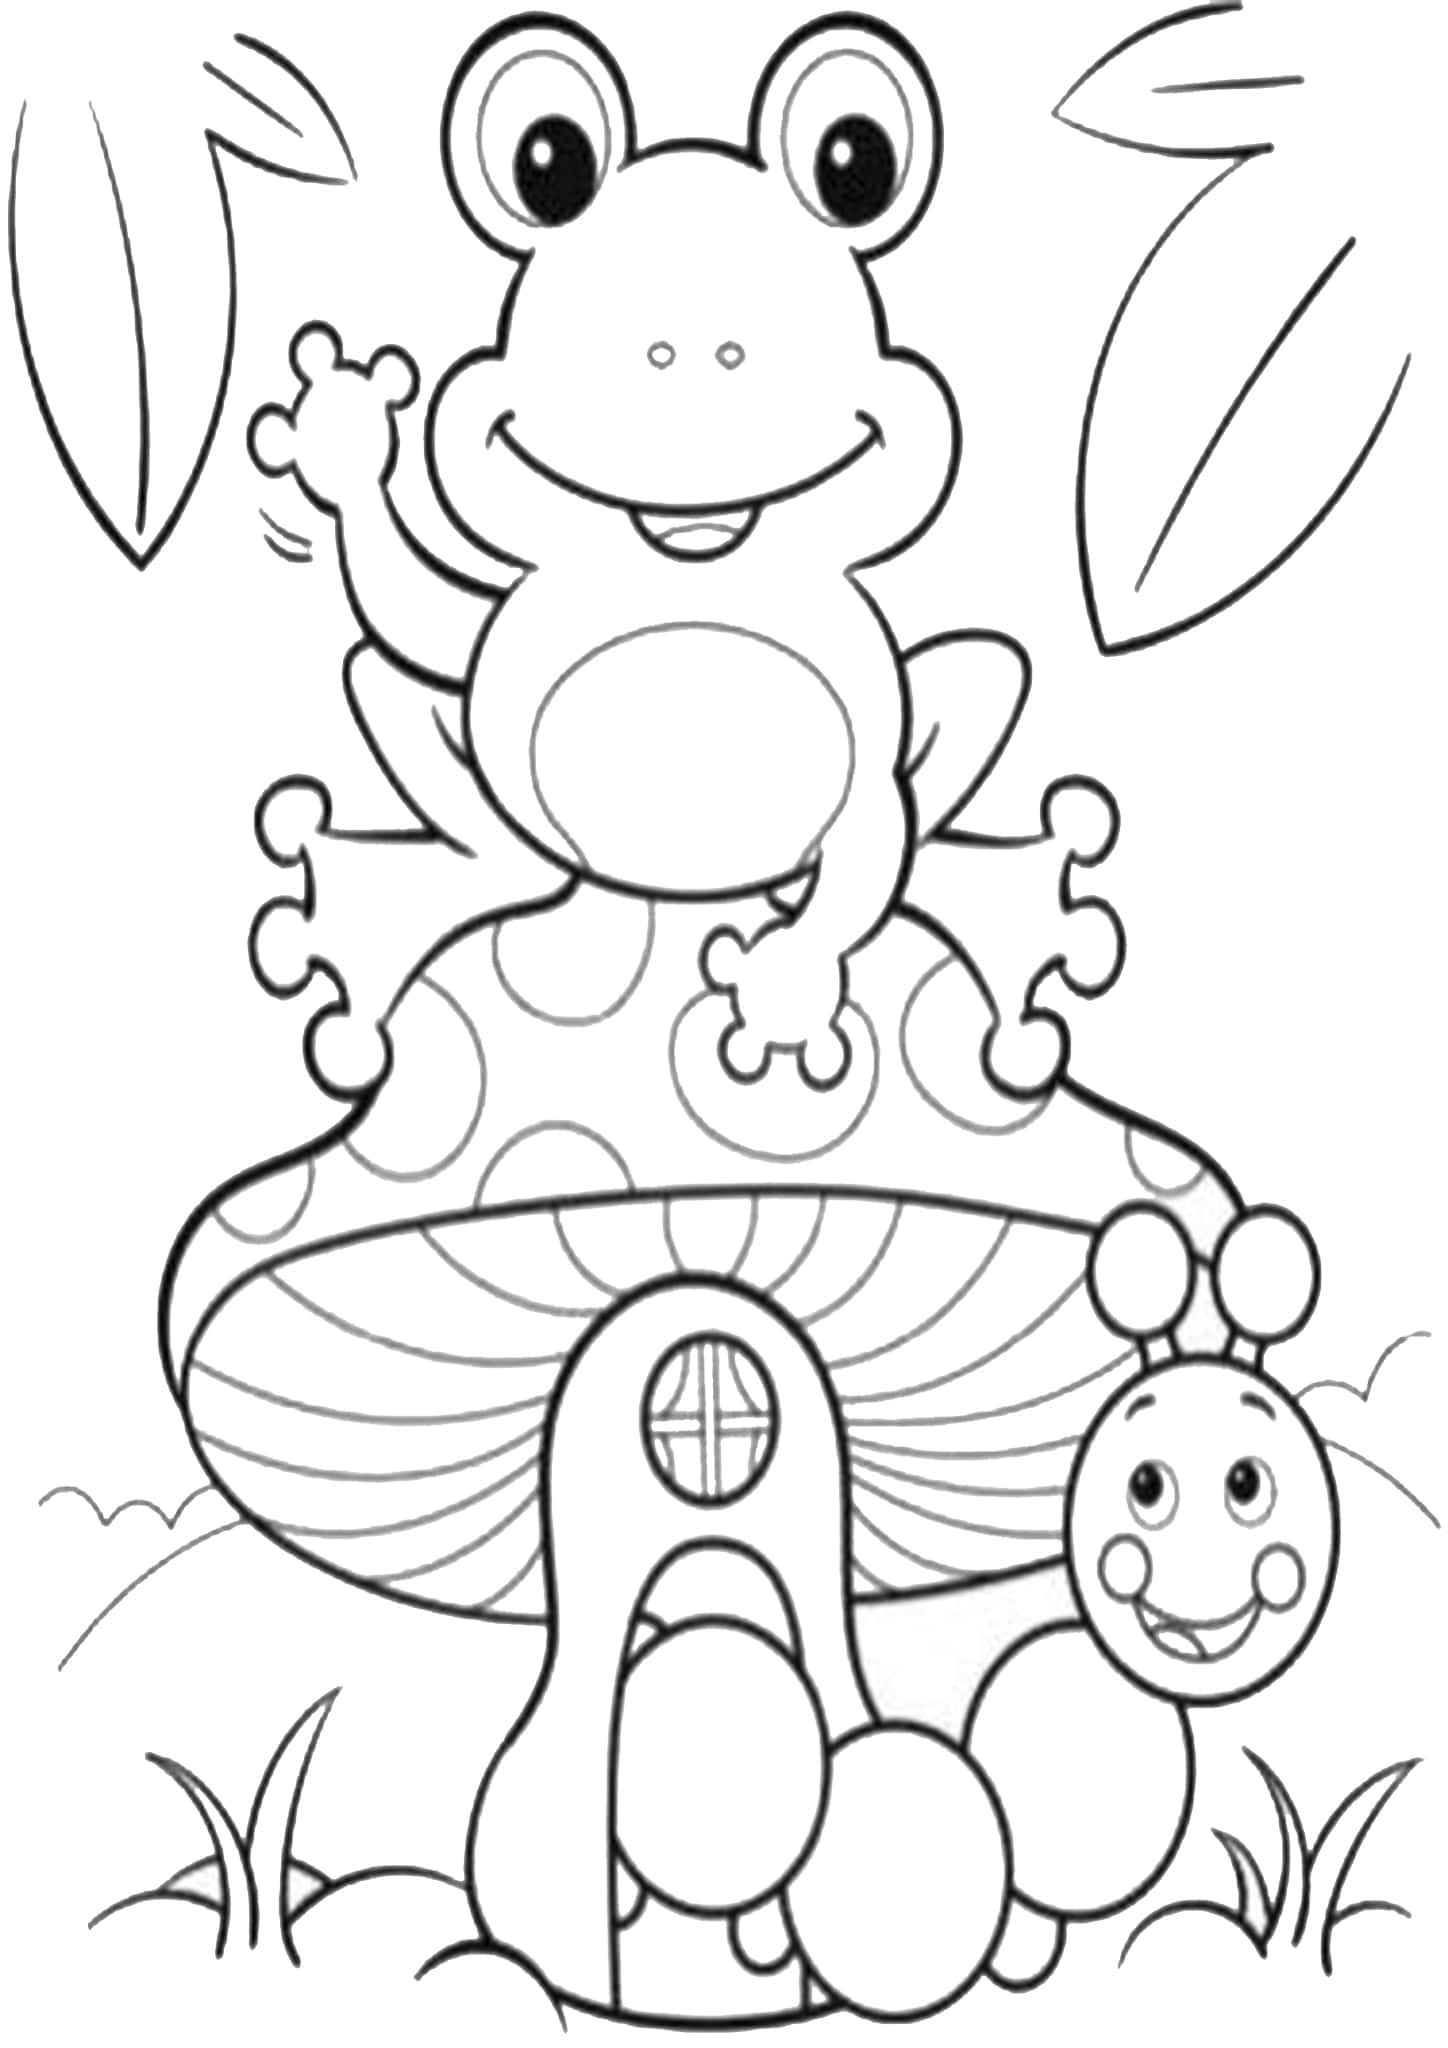 Free Easy To Print Frog Coloring Pages Frog Coloring Pages Spring Coloring Sheets Spring Coloring Pages